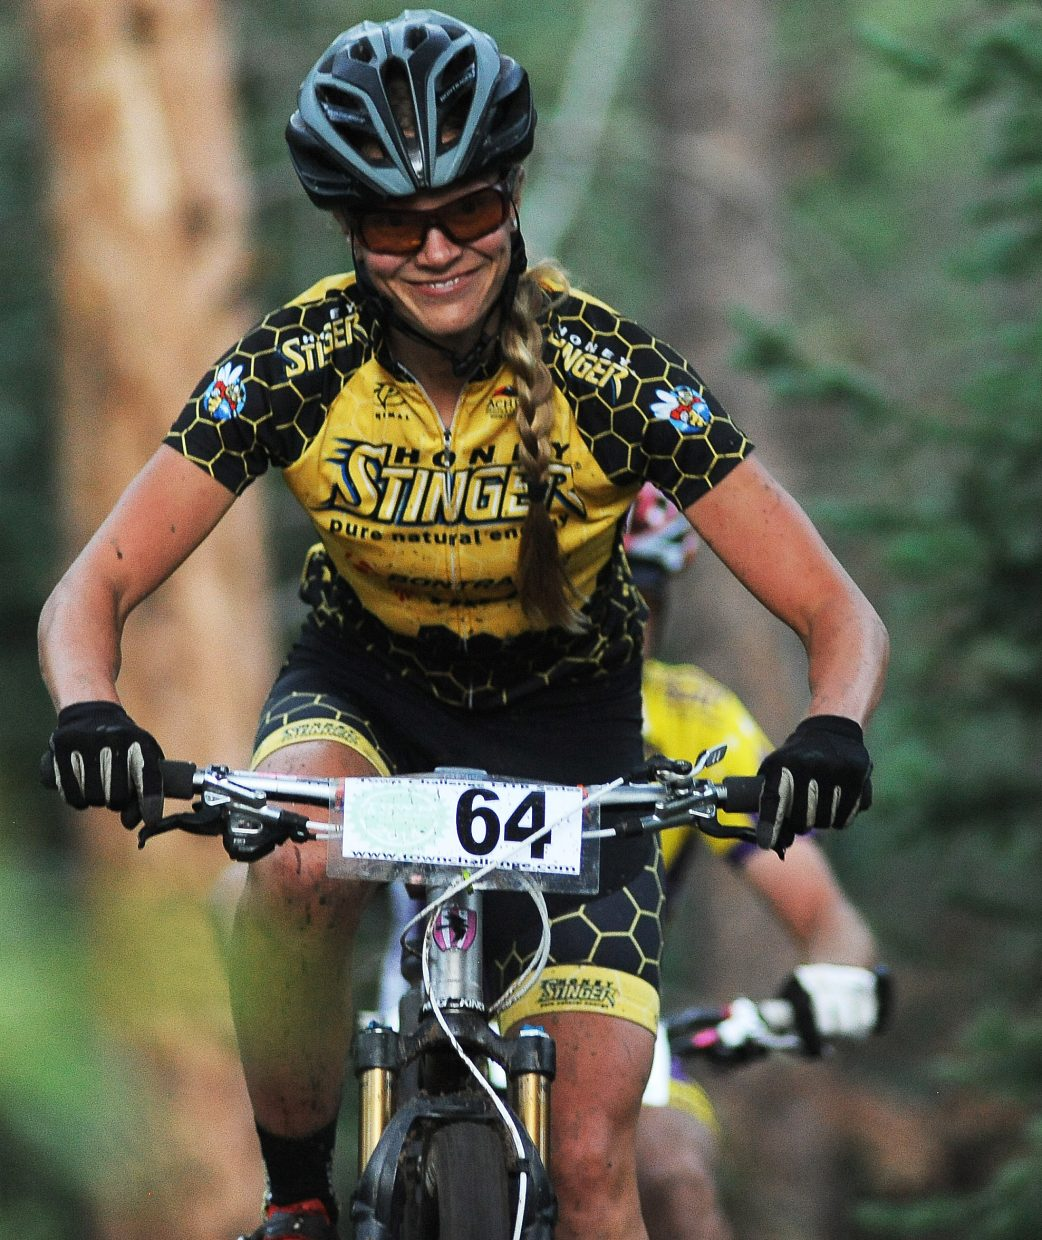 Hannah Williams smiles wide as he heads toward the finish of Wednesday night's Town Challenge mountain bike race. She lost the day, finishing just behind Linnea Dixson. But Williams won the season, claiming the top women's division championship for the second consecutive summer.